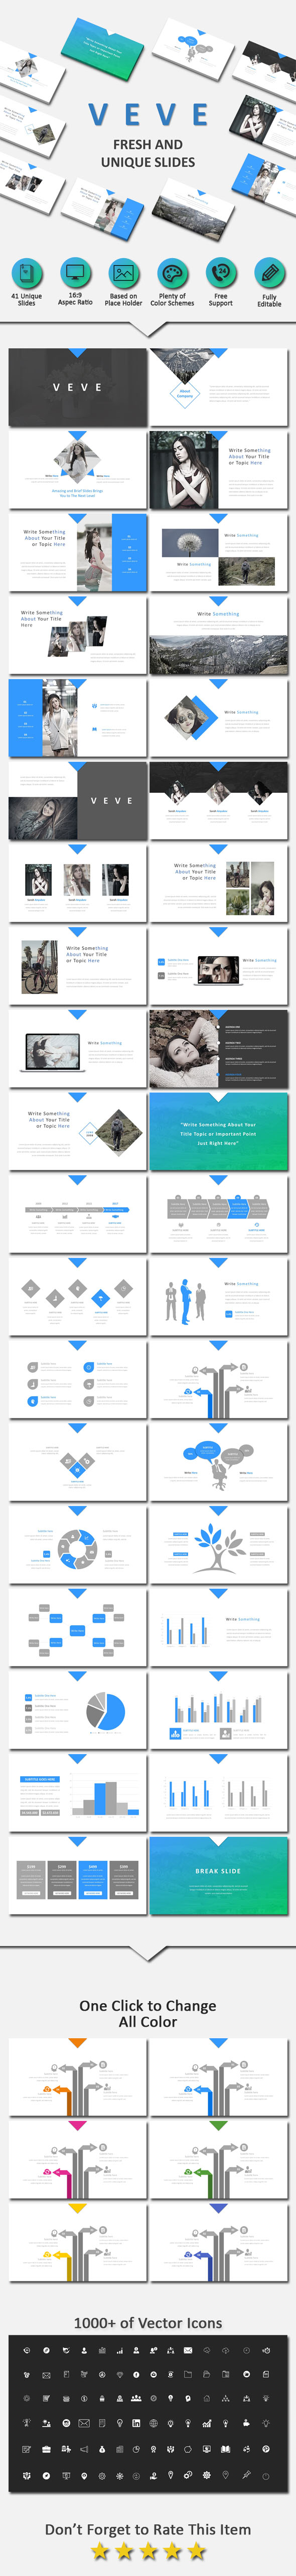 Veve Creative Powerpoint - Business PowerPoint Templates